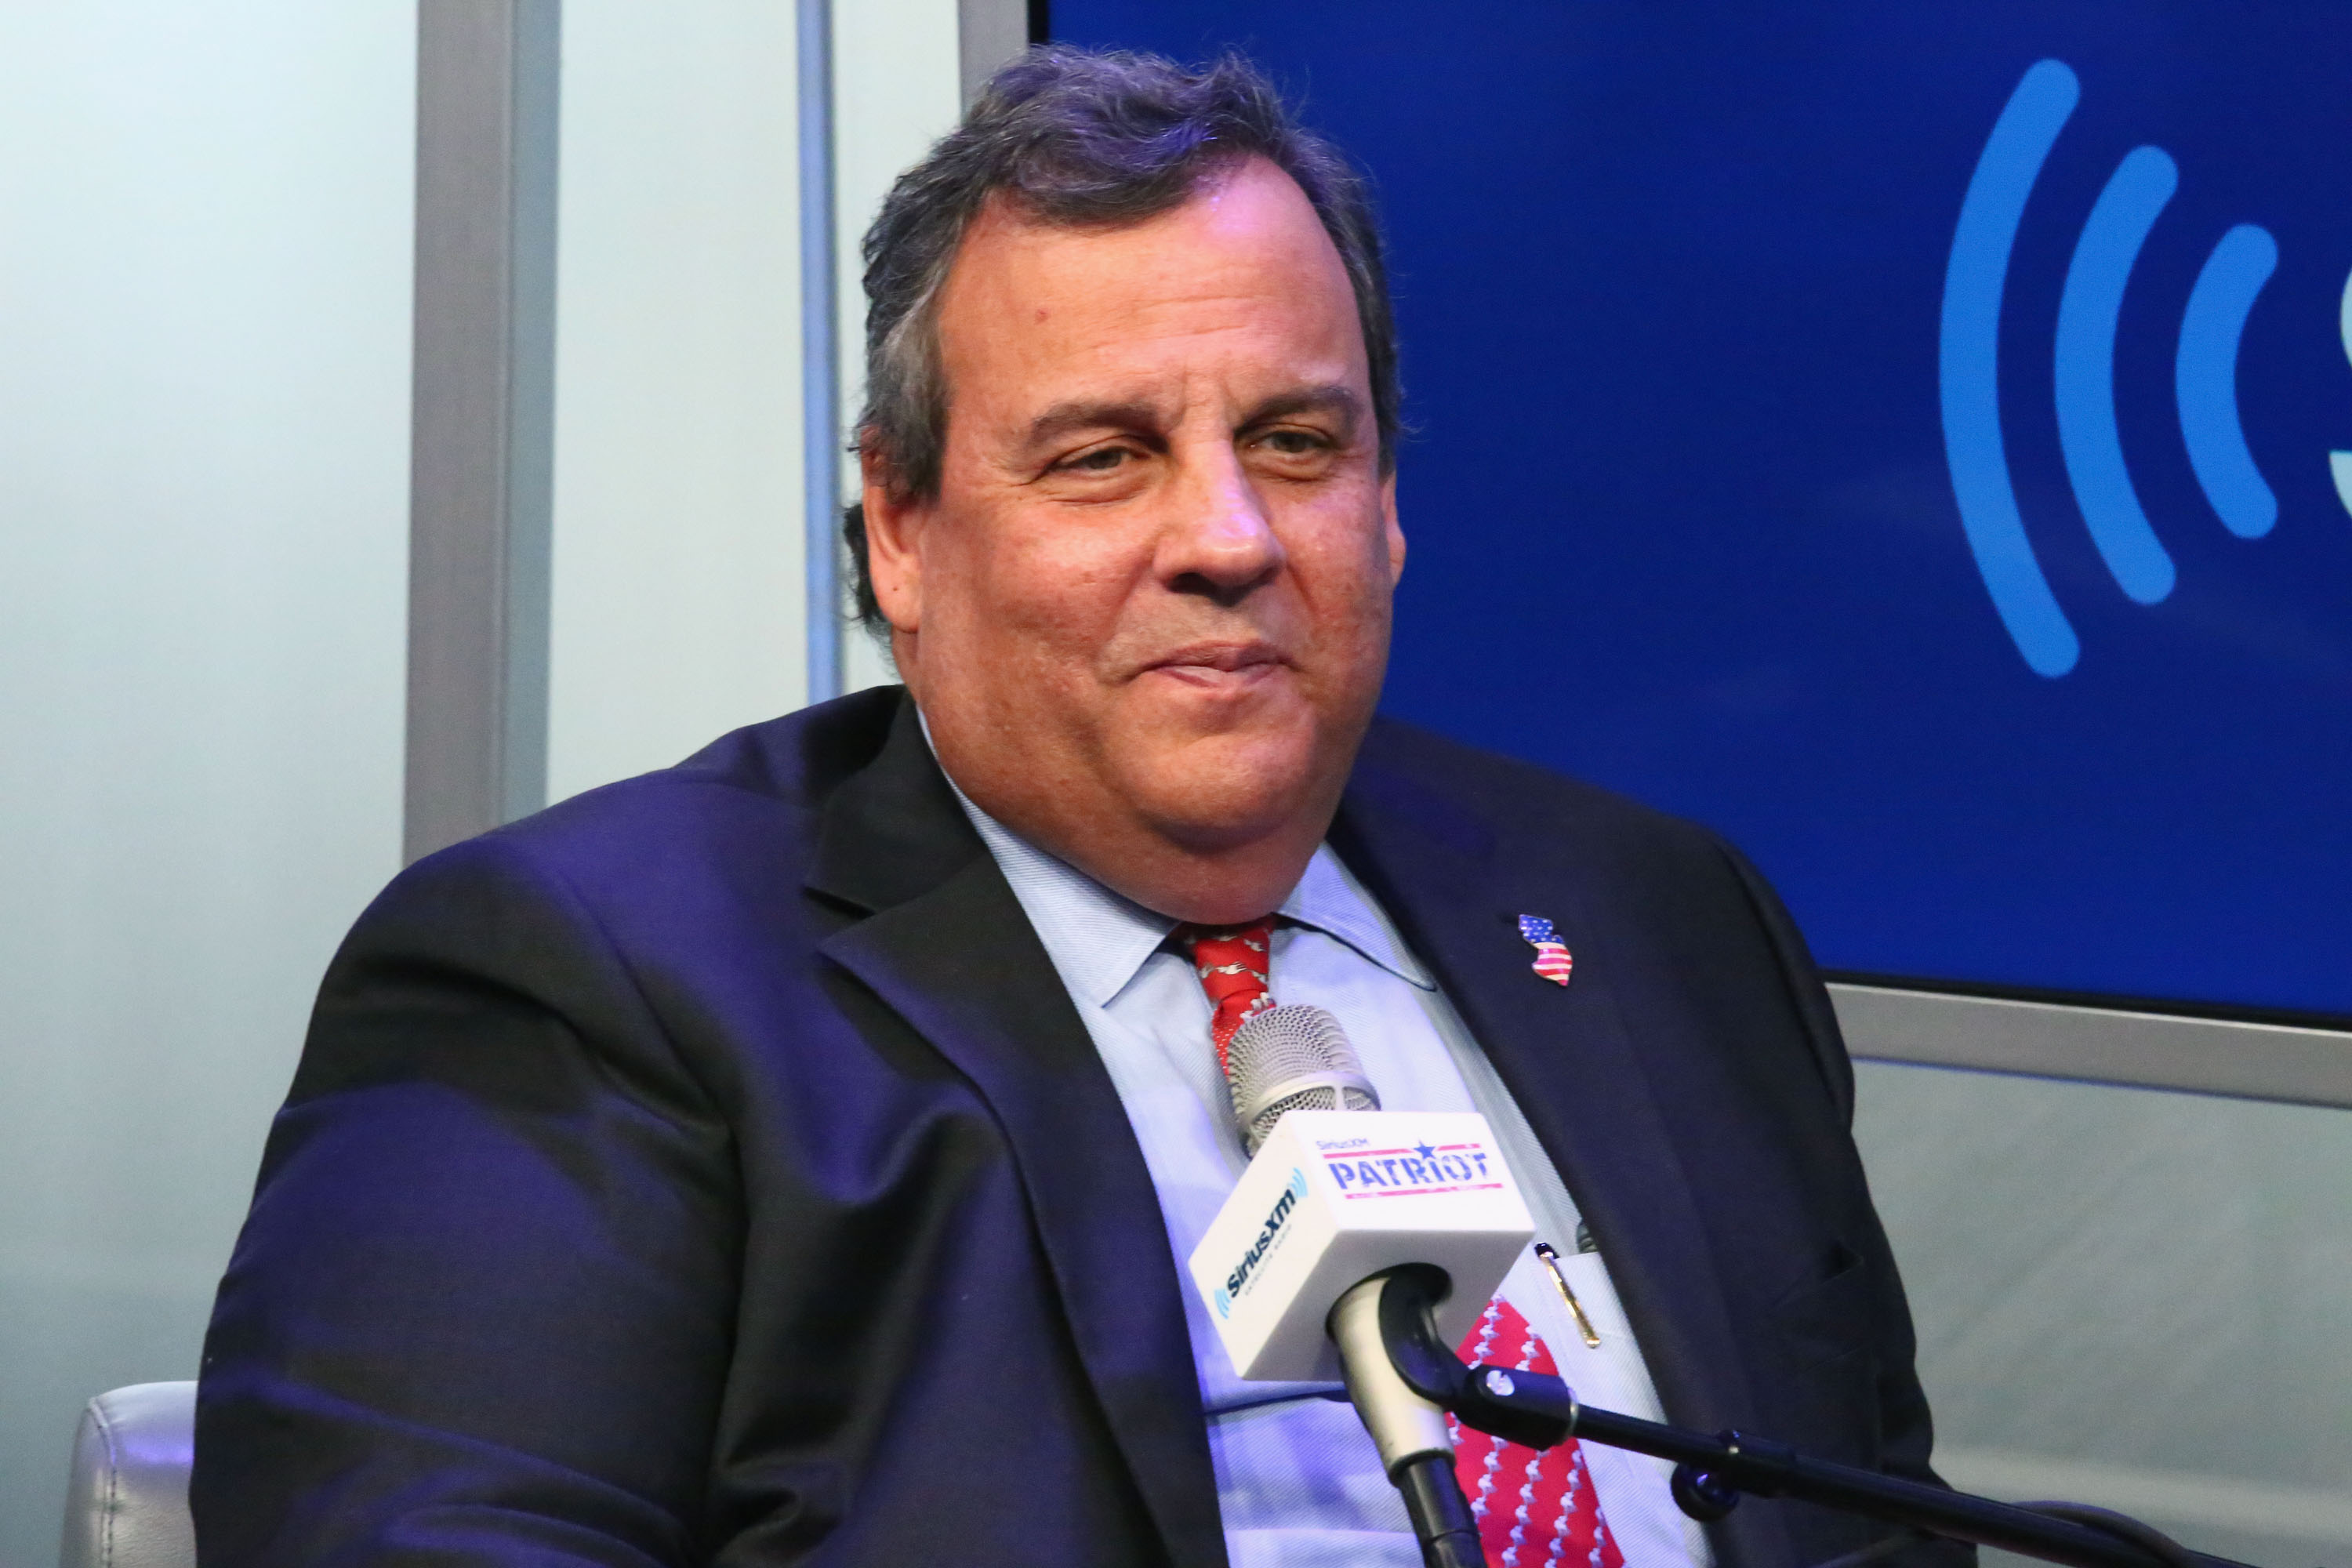 Fmr. Governor Chris Christie Joins SiriusXM Host David Webb For A Town Hall In New York